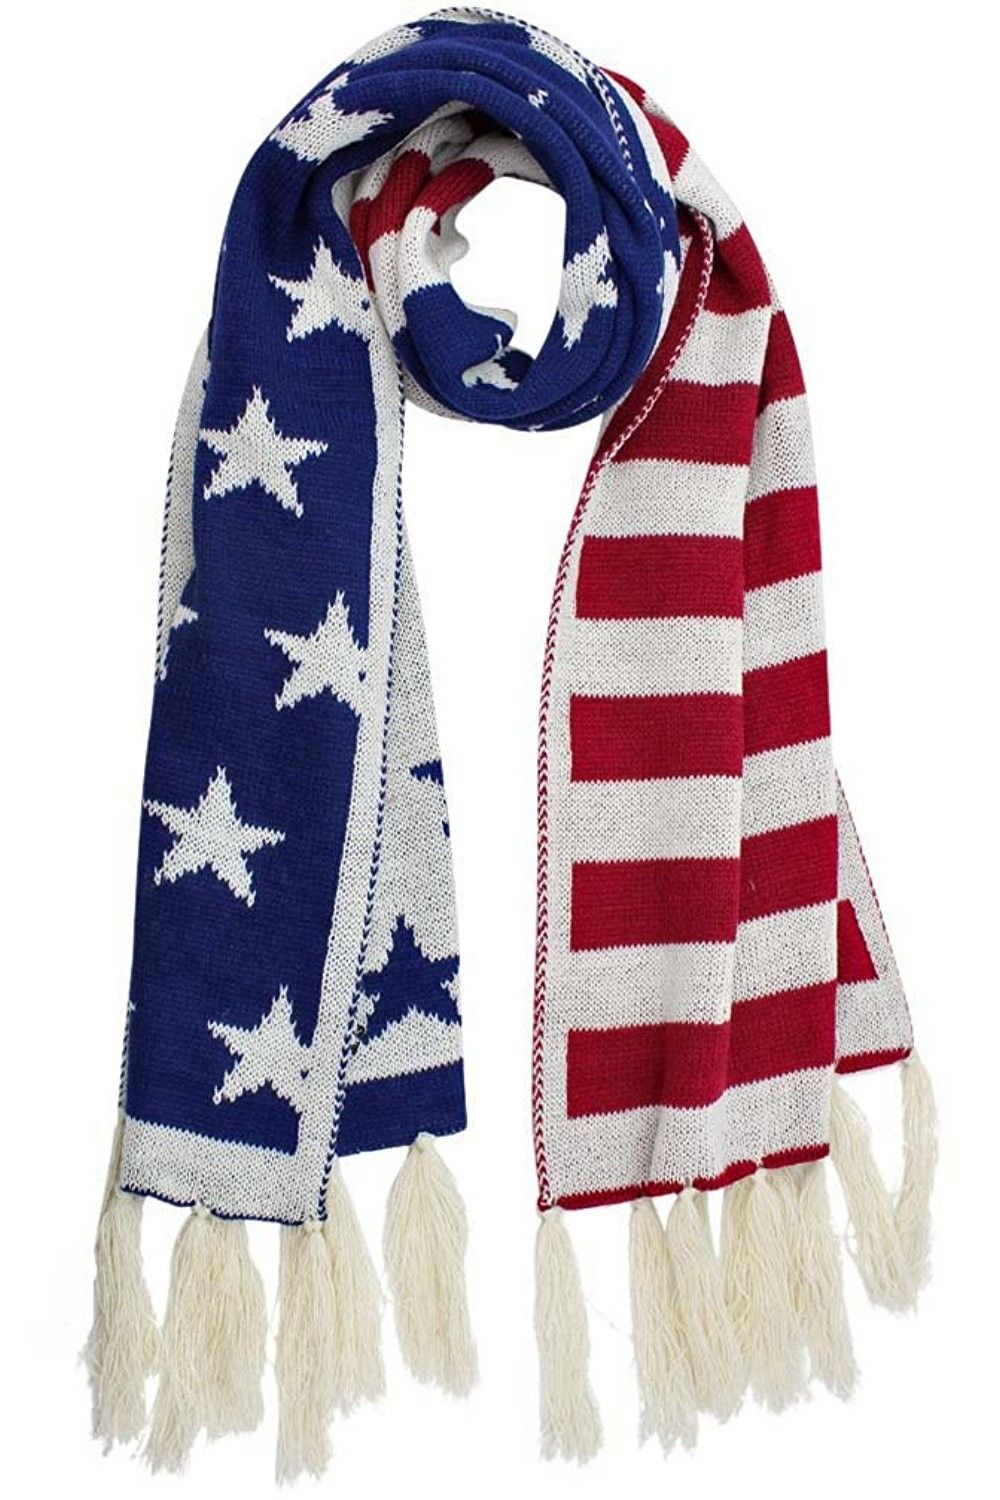 Patriotic American Stars Stripes Flag Long Winter Knit Scarf With Fringe Ck12ntp2xc8 Winter Knit Scarf Knit Scarf Winter Knits